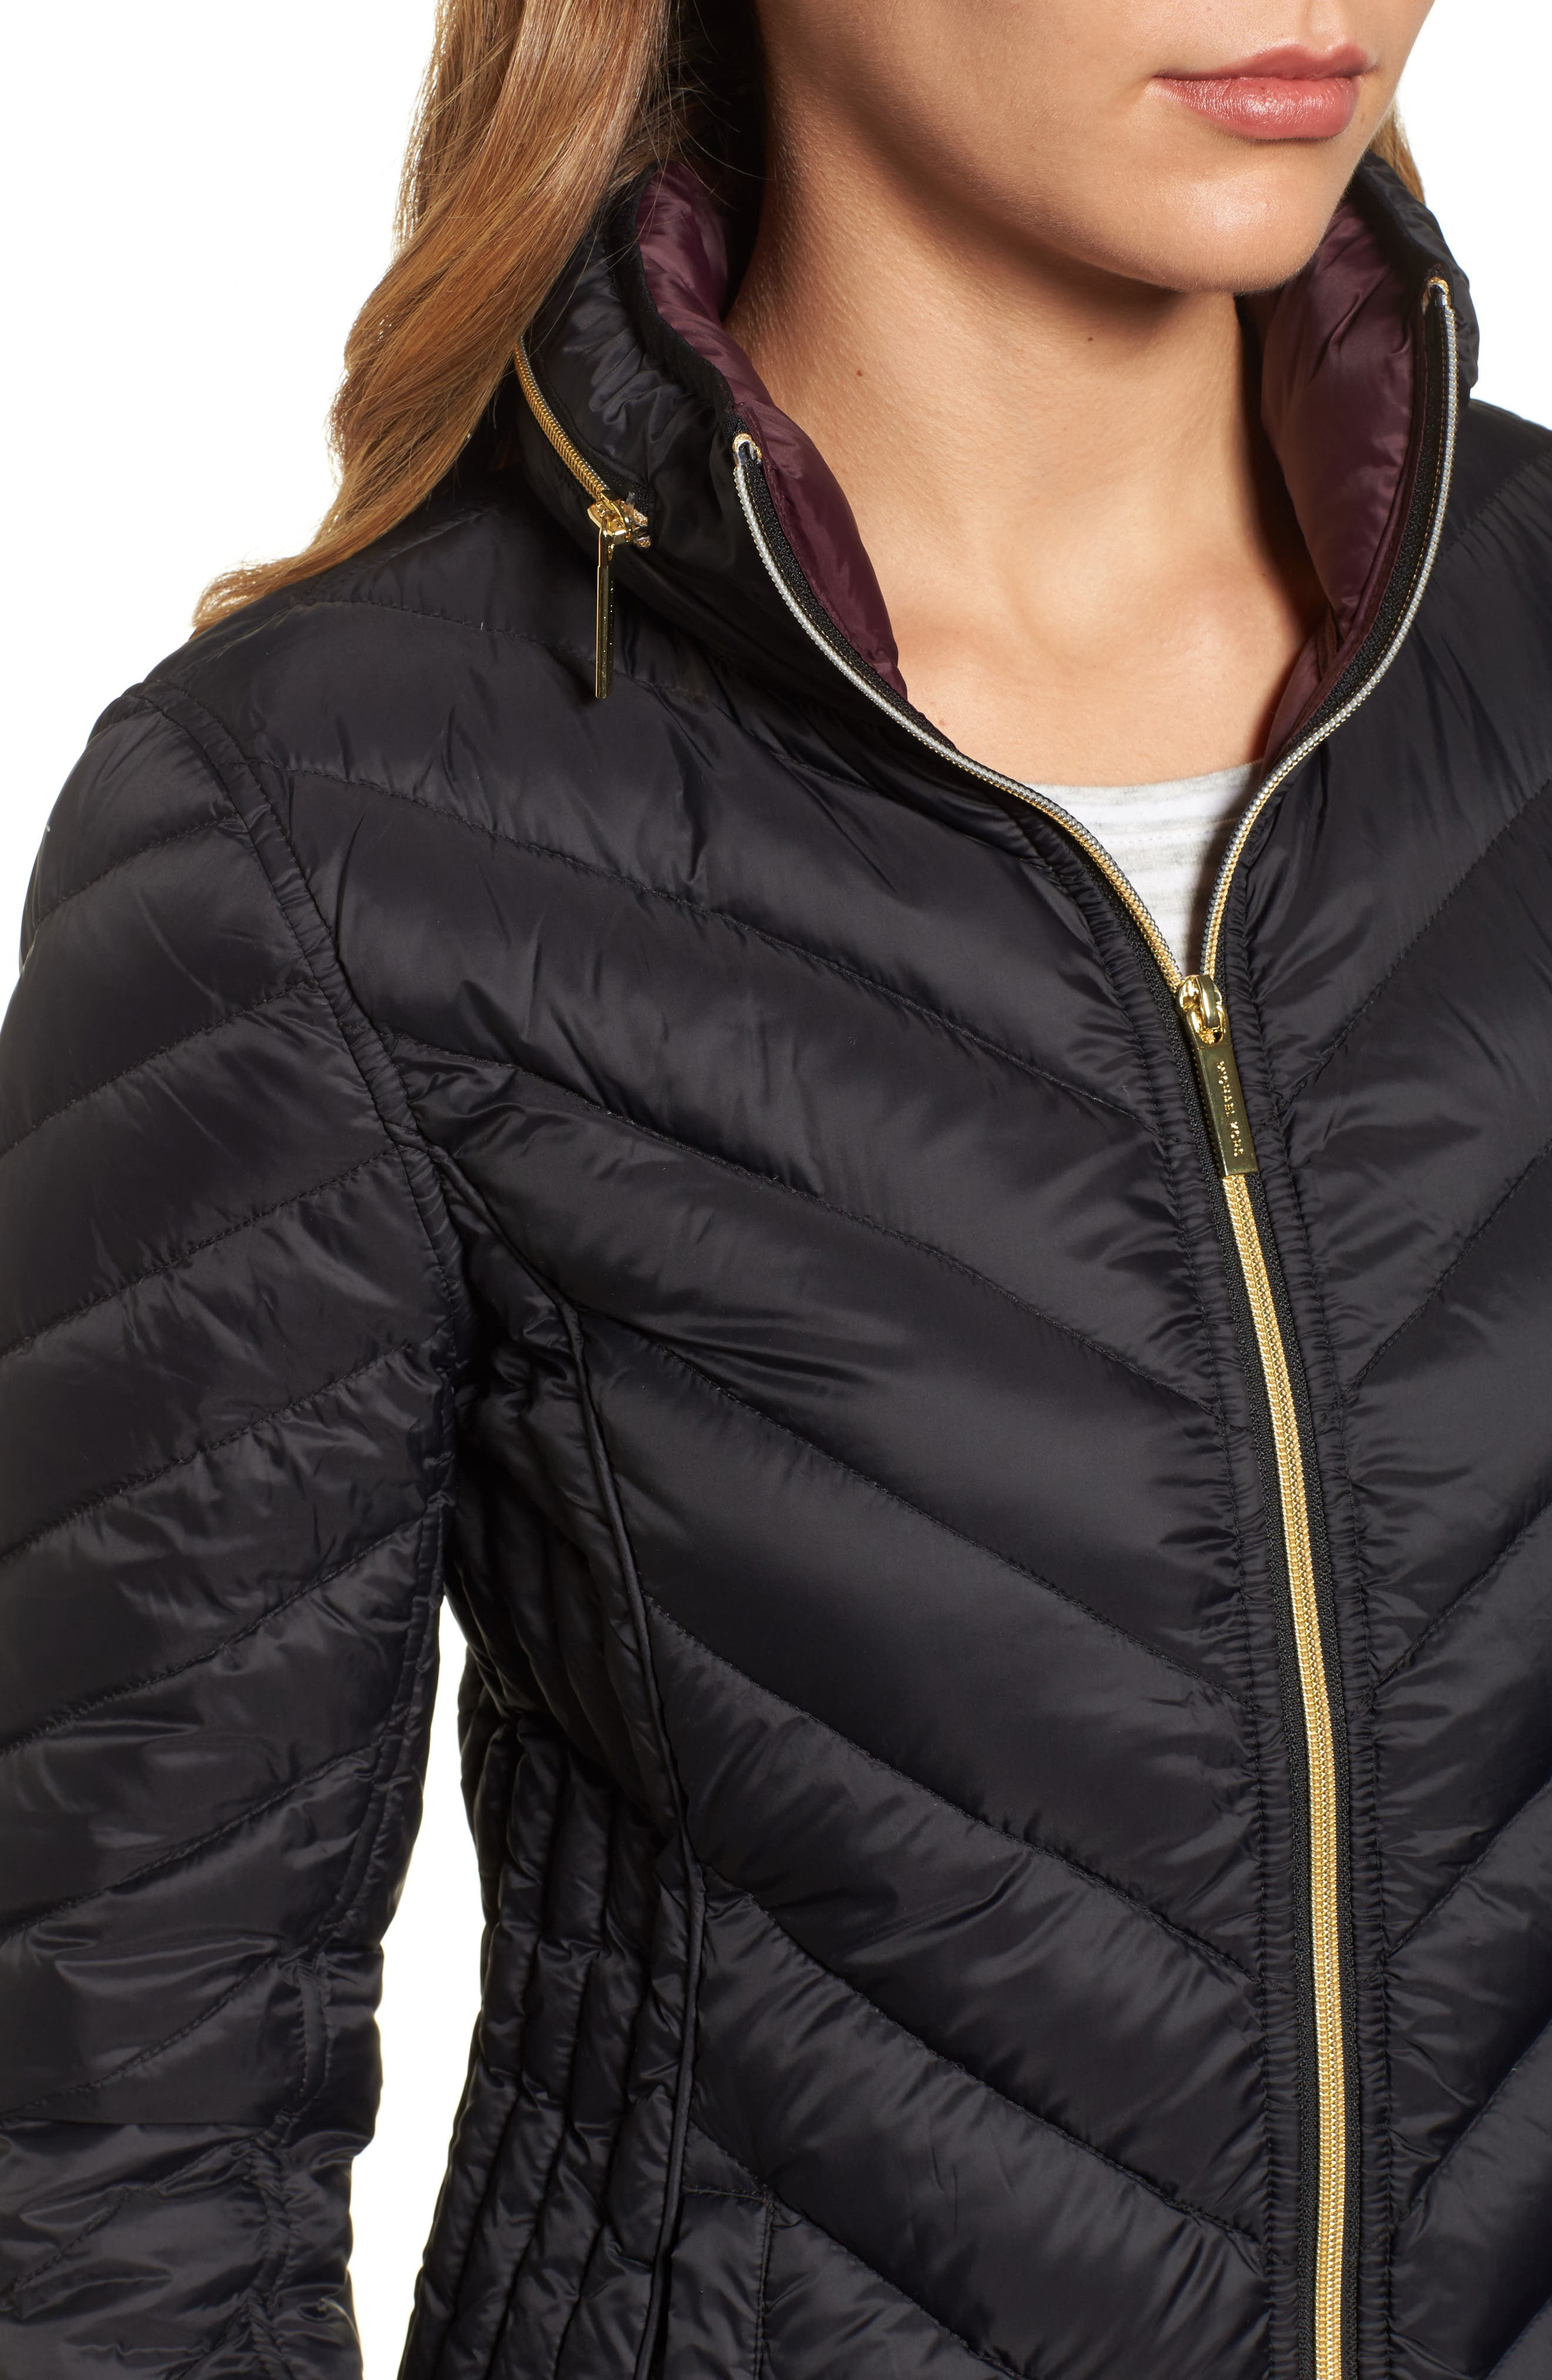 Chevron Quilted Packable Down Puffer Jacket with Stowaway Hood,                             Alternate thumbnail 4, color,                             001